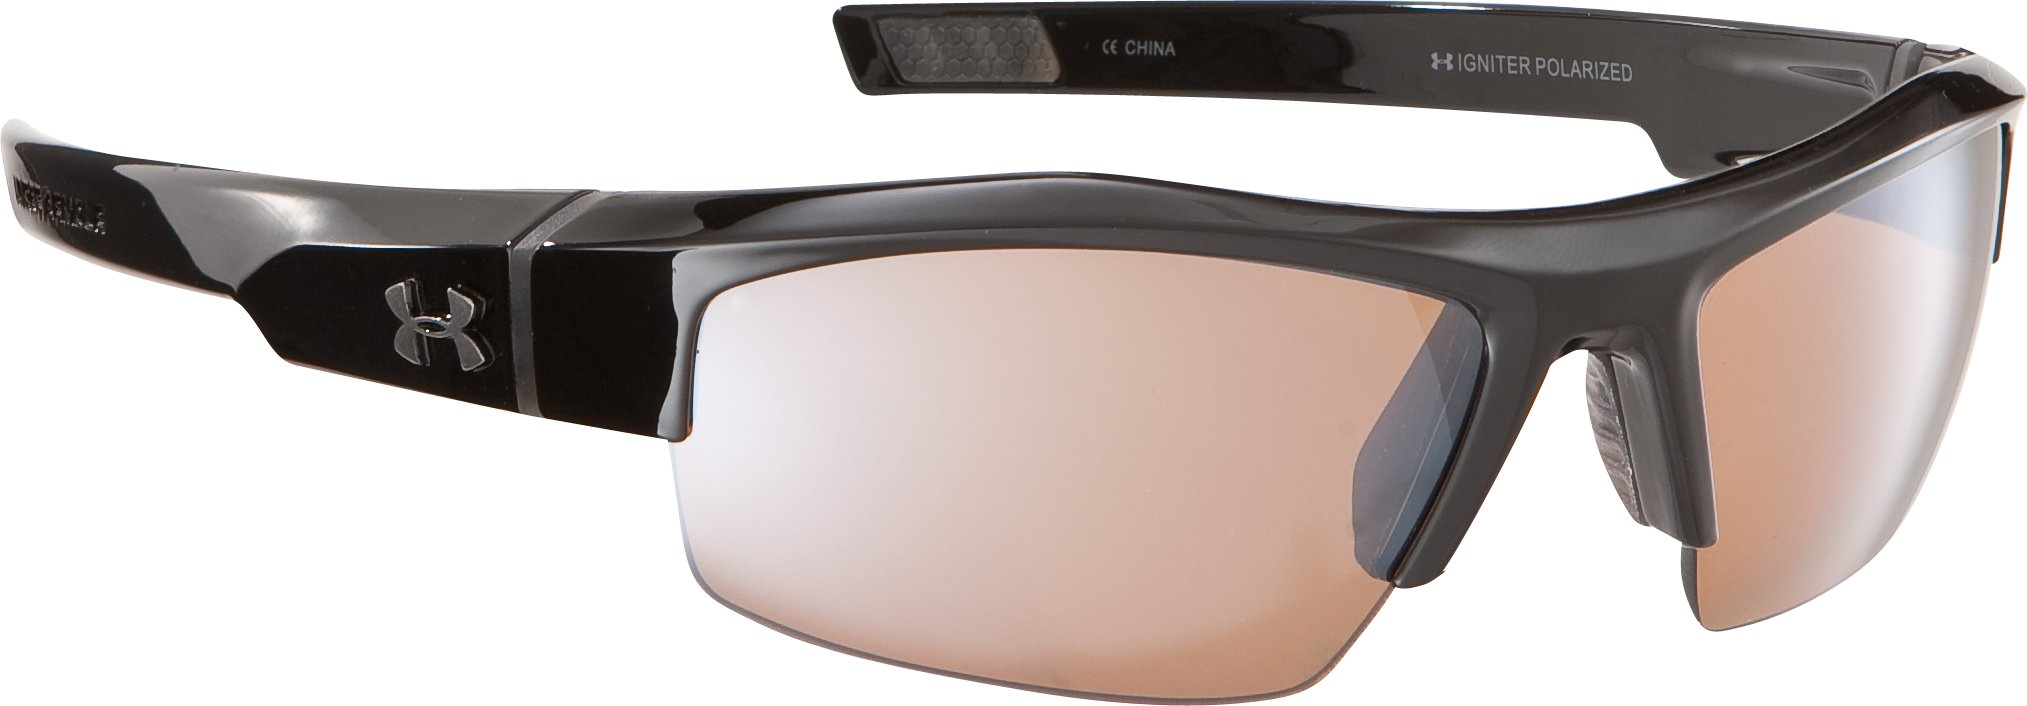 Men's UA Igniter Polarized Multiflection™ Sunglasses, Shiny Black